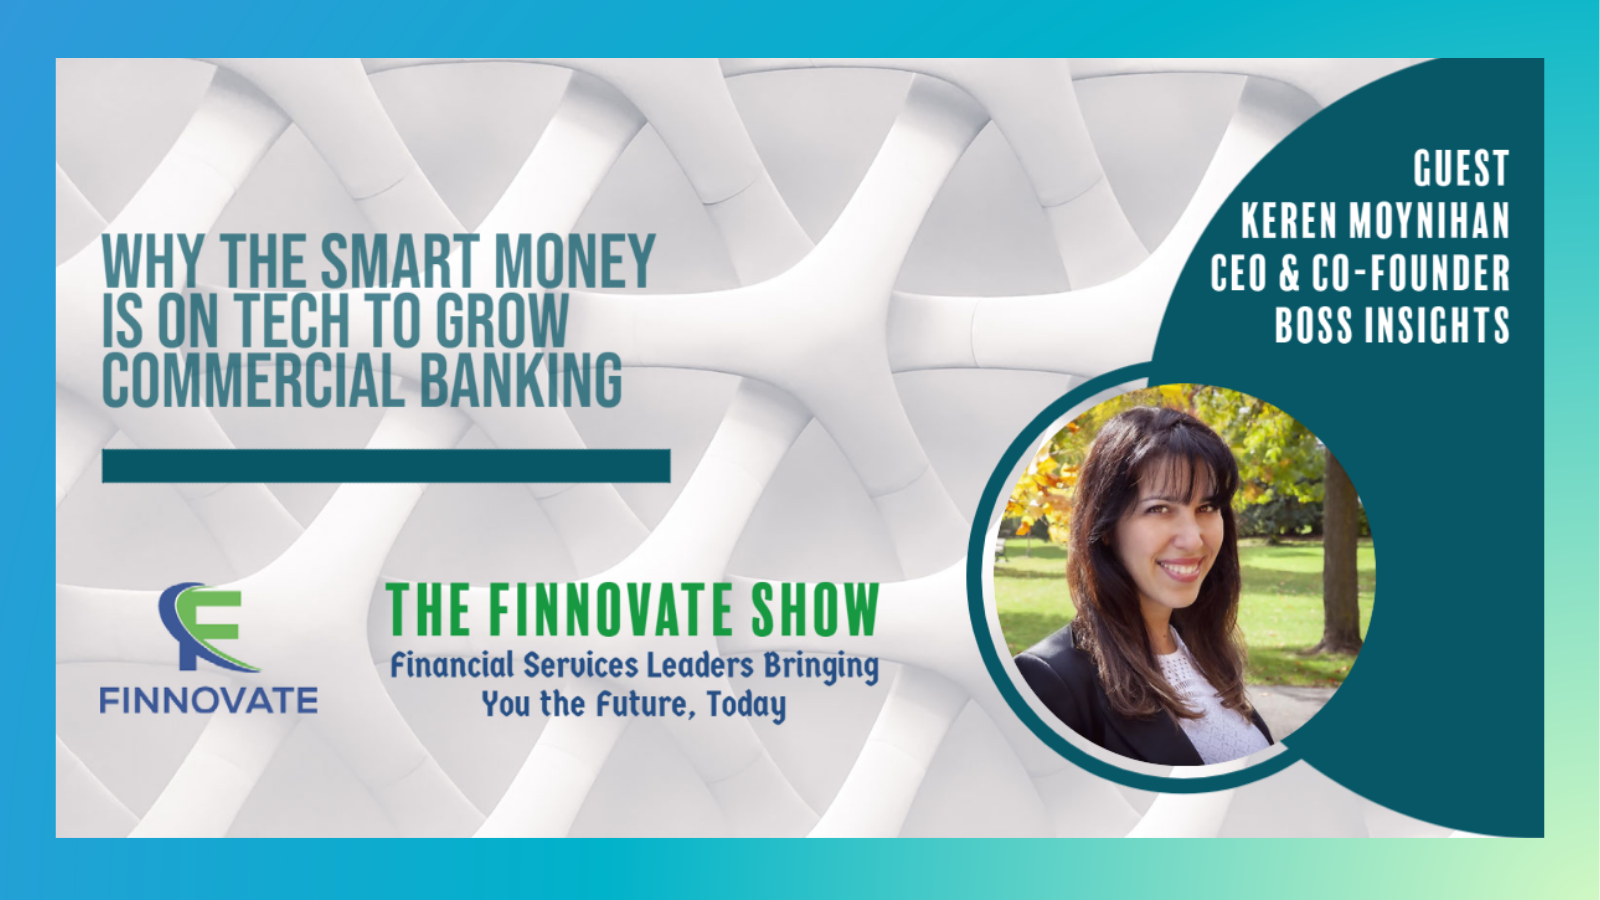 Boss Insights On The Finovate Show By Innovation 360